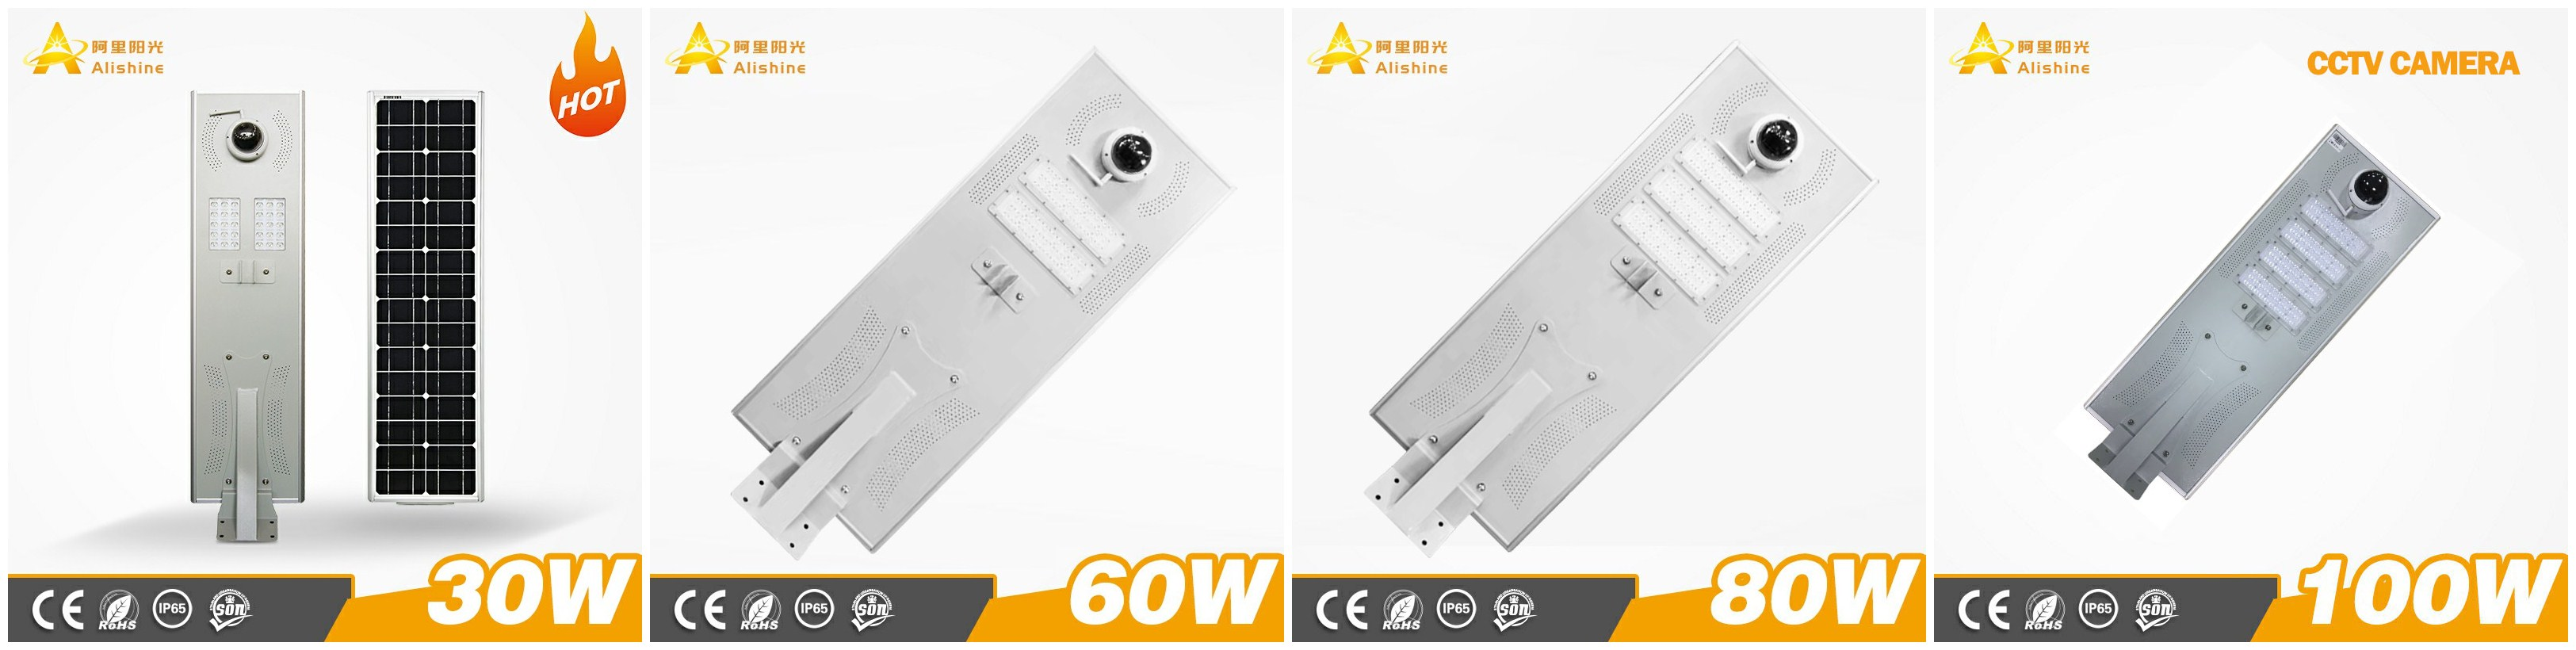 Standalone smart solar-powered street light with CCTV Camera